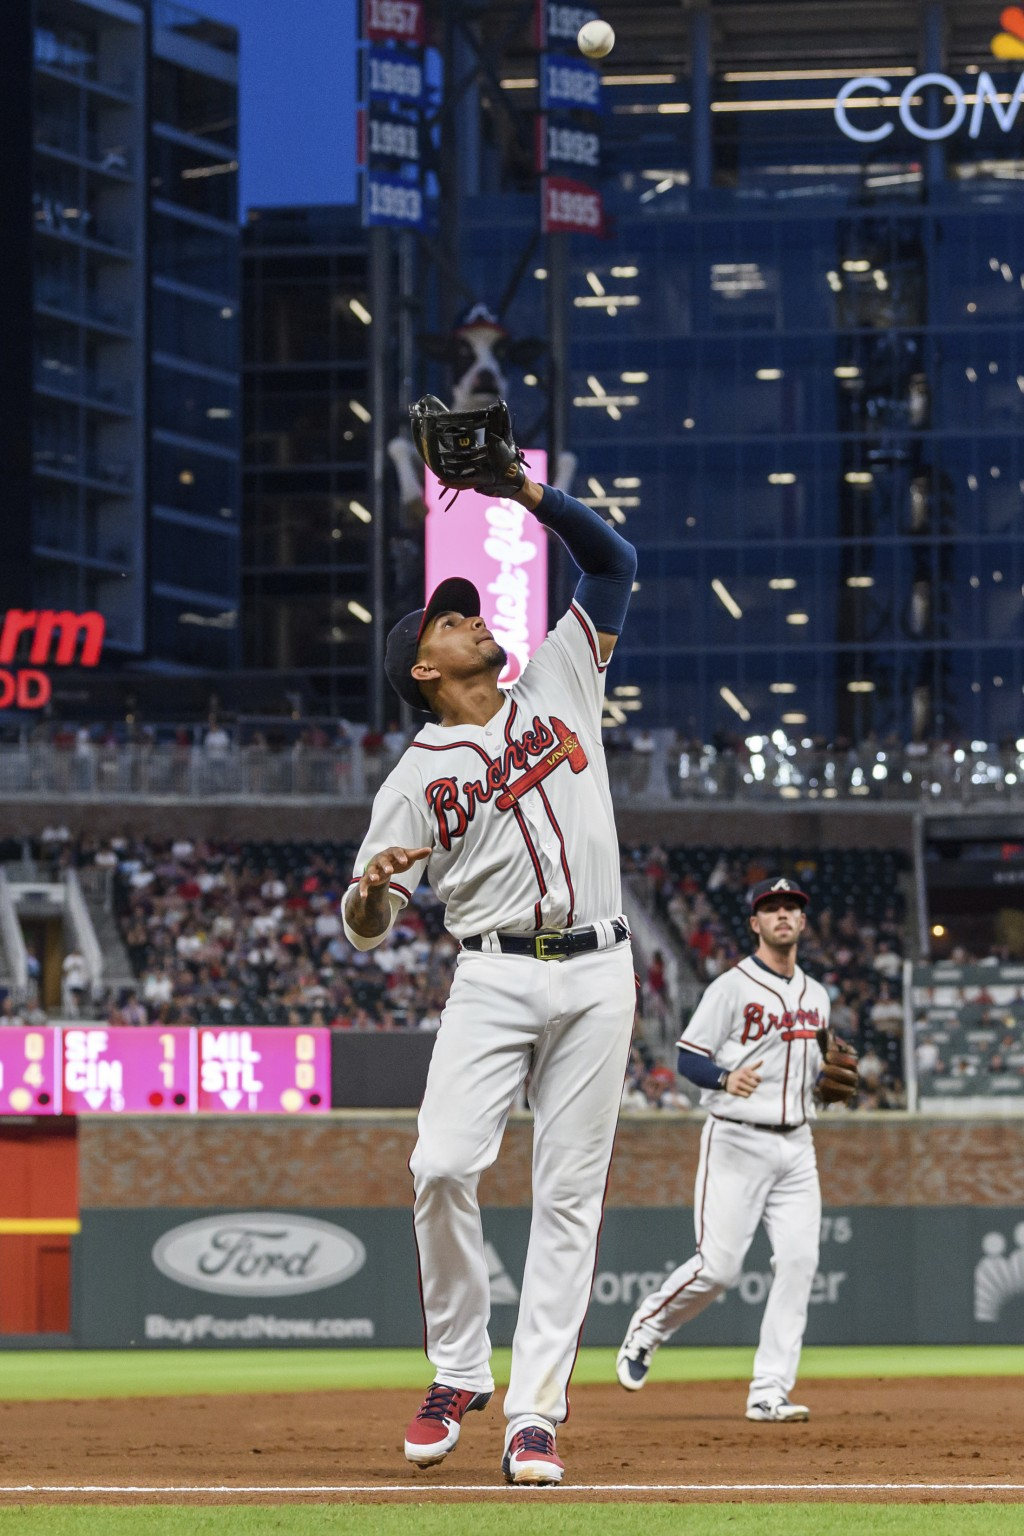 Atlanta Braves third baseman Johan Camargo catches the ball for an out on Colorado Rockies' Carlos Gonzalez during the third inning of a baseball game...